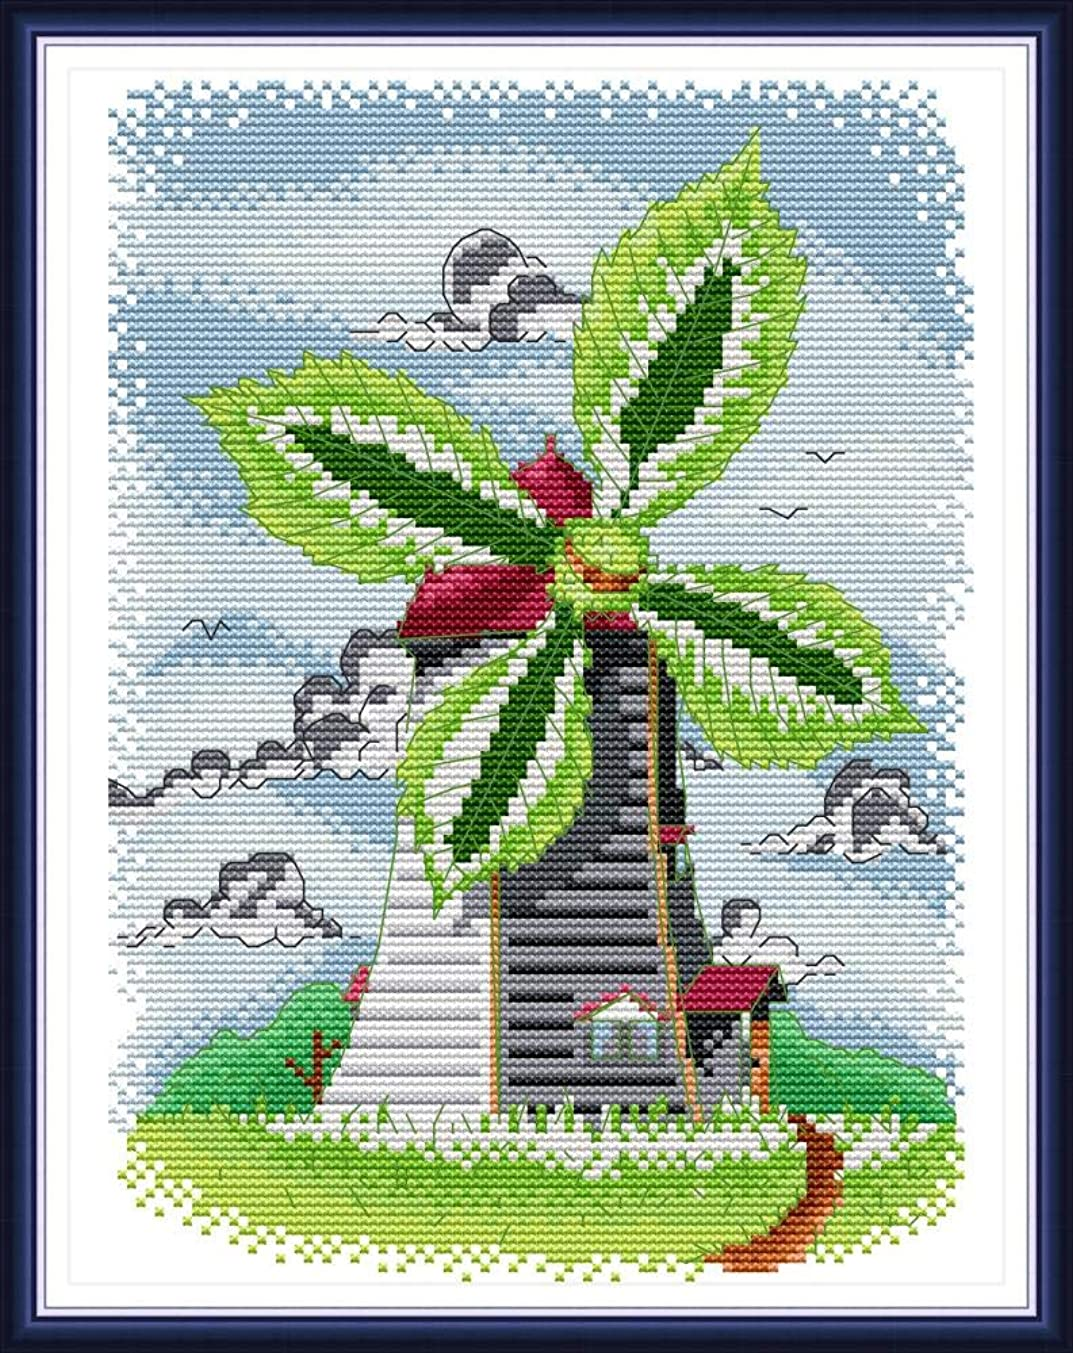 Cross Stitch Stamped Kits Pre-Printed Cross-Stitching Starter Patterns for Beginner Kids or Adults, Summer Windmill Needlepoint Set Embroidery Kits for Home Decor